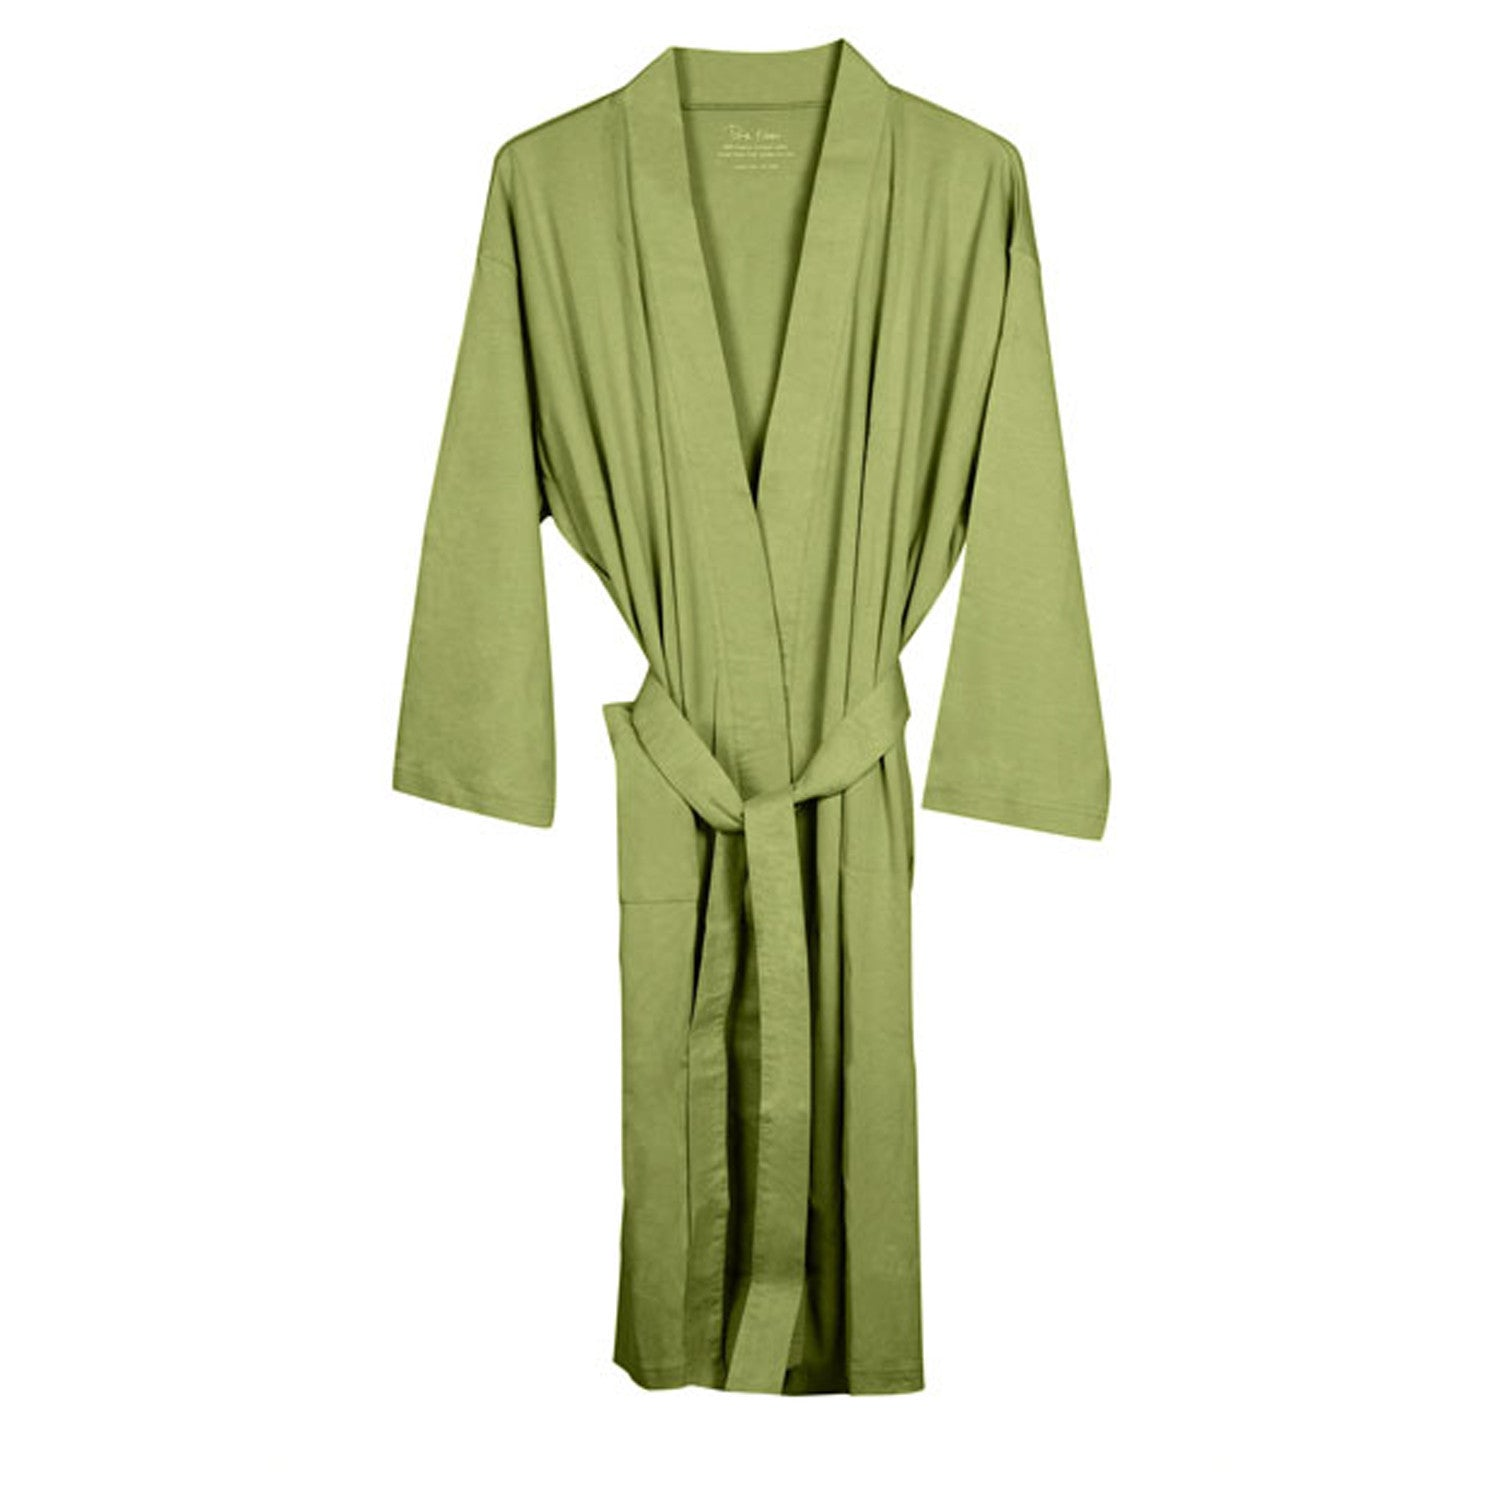 a52b9edd5c Organic Cotton Jersey Knit Robe in Sage Green-Bathrobes-Alan Decor